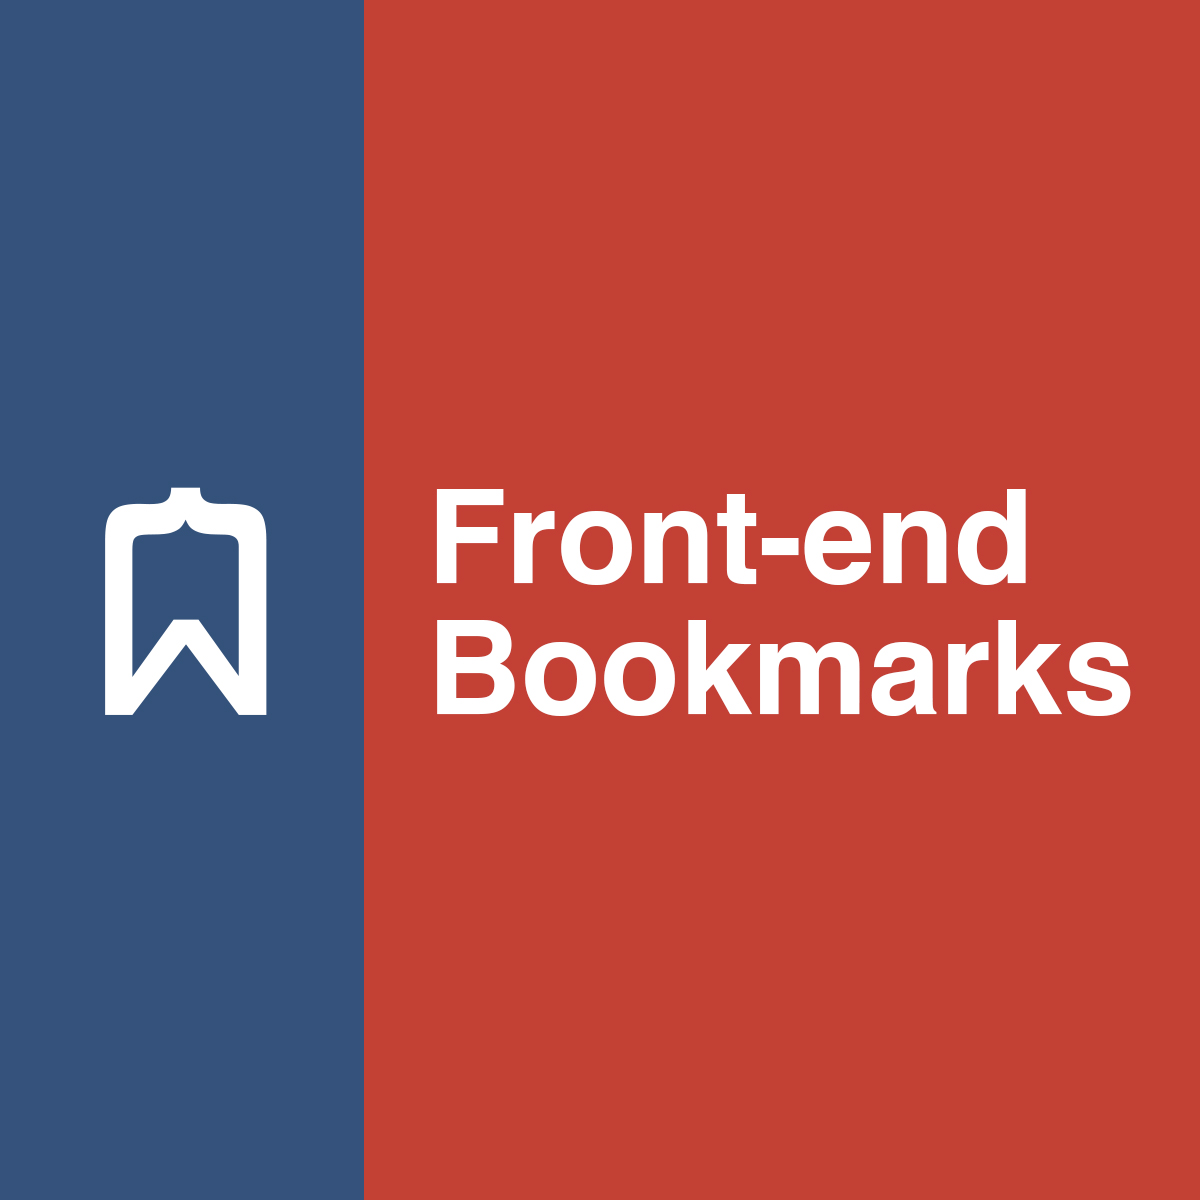 Front-end Bookmarks